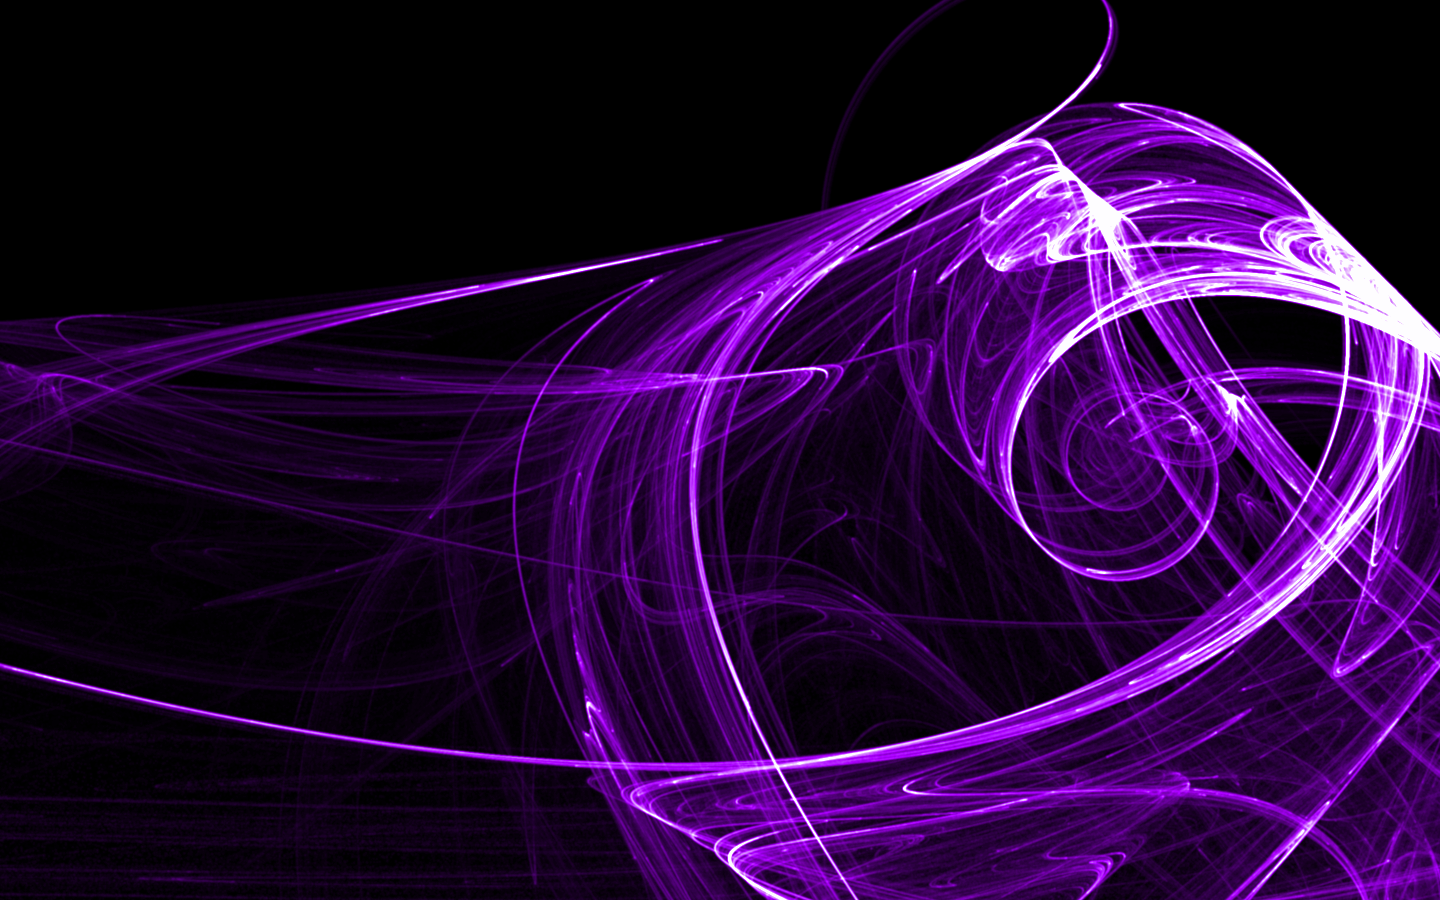 abstract art backgrounds - photo #33